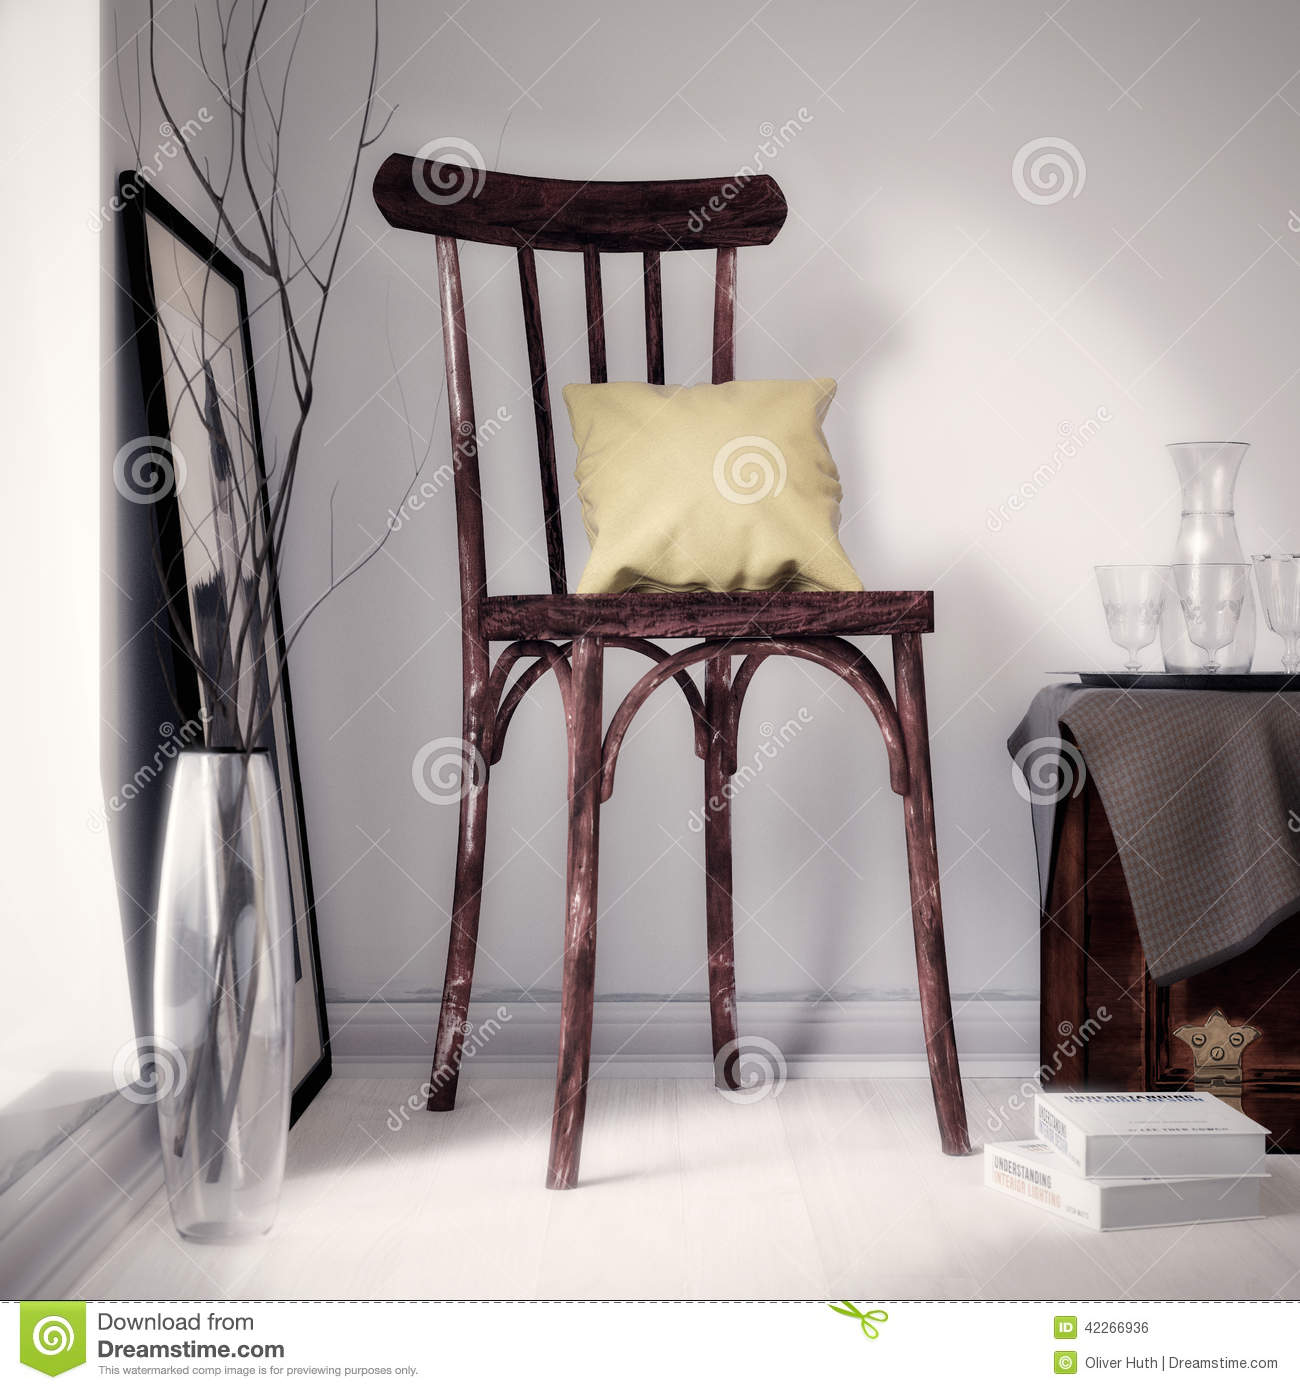 Old brown seat